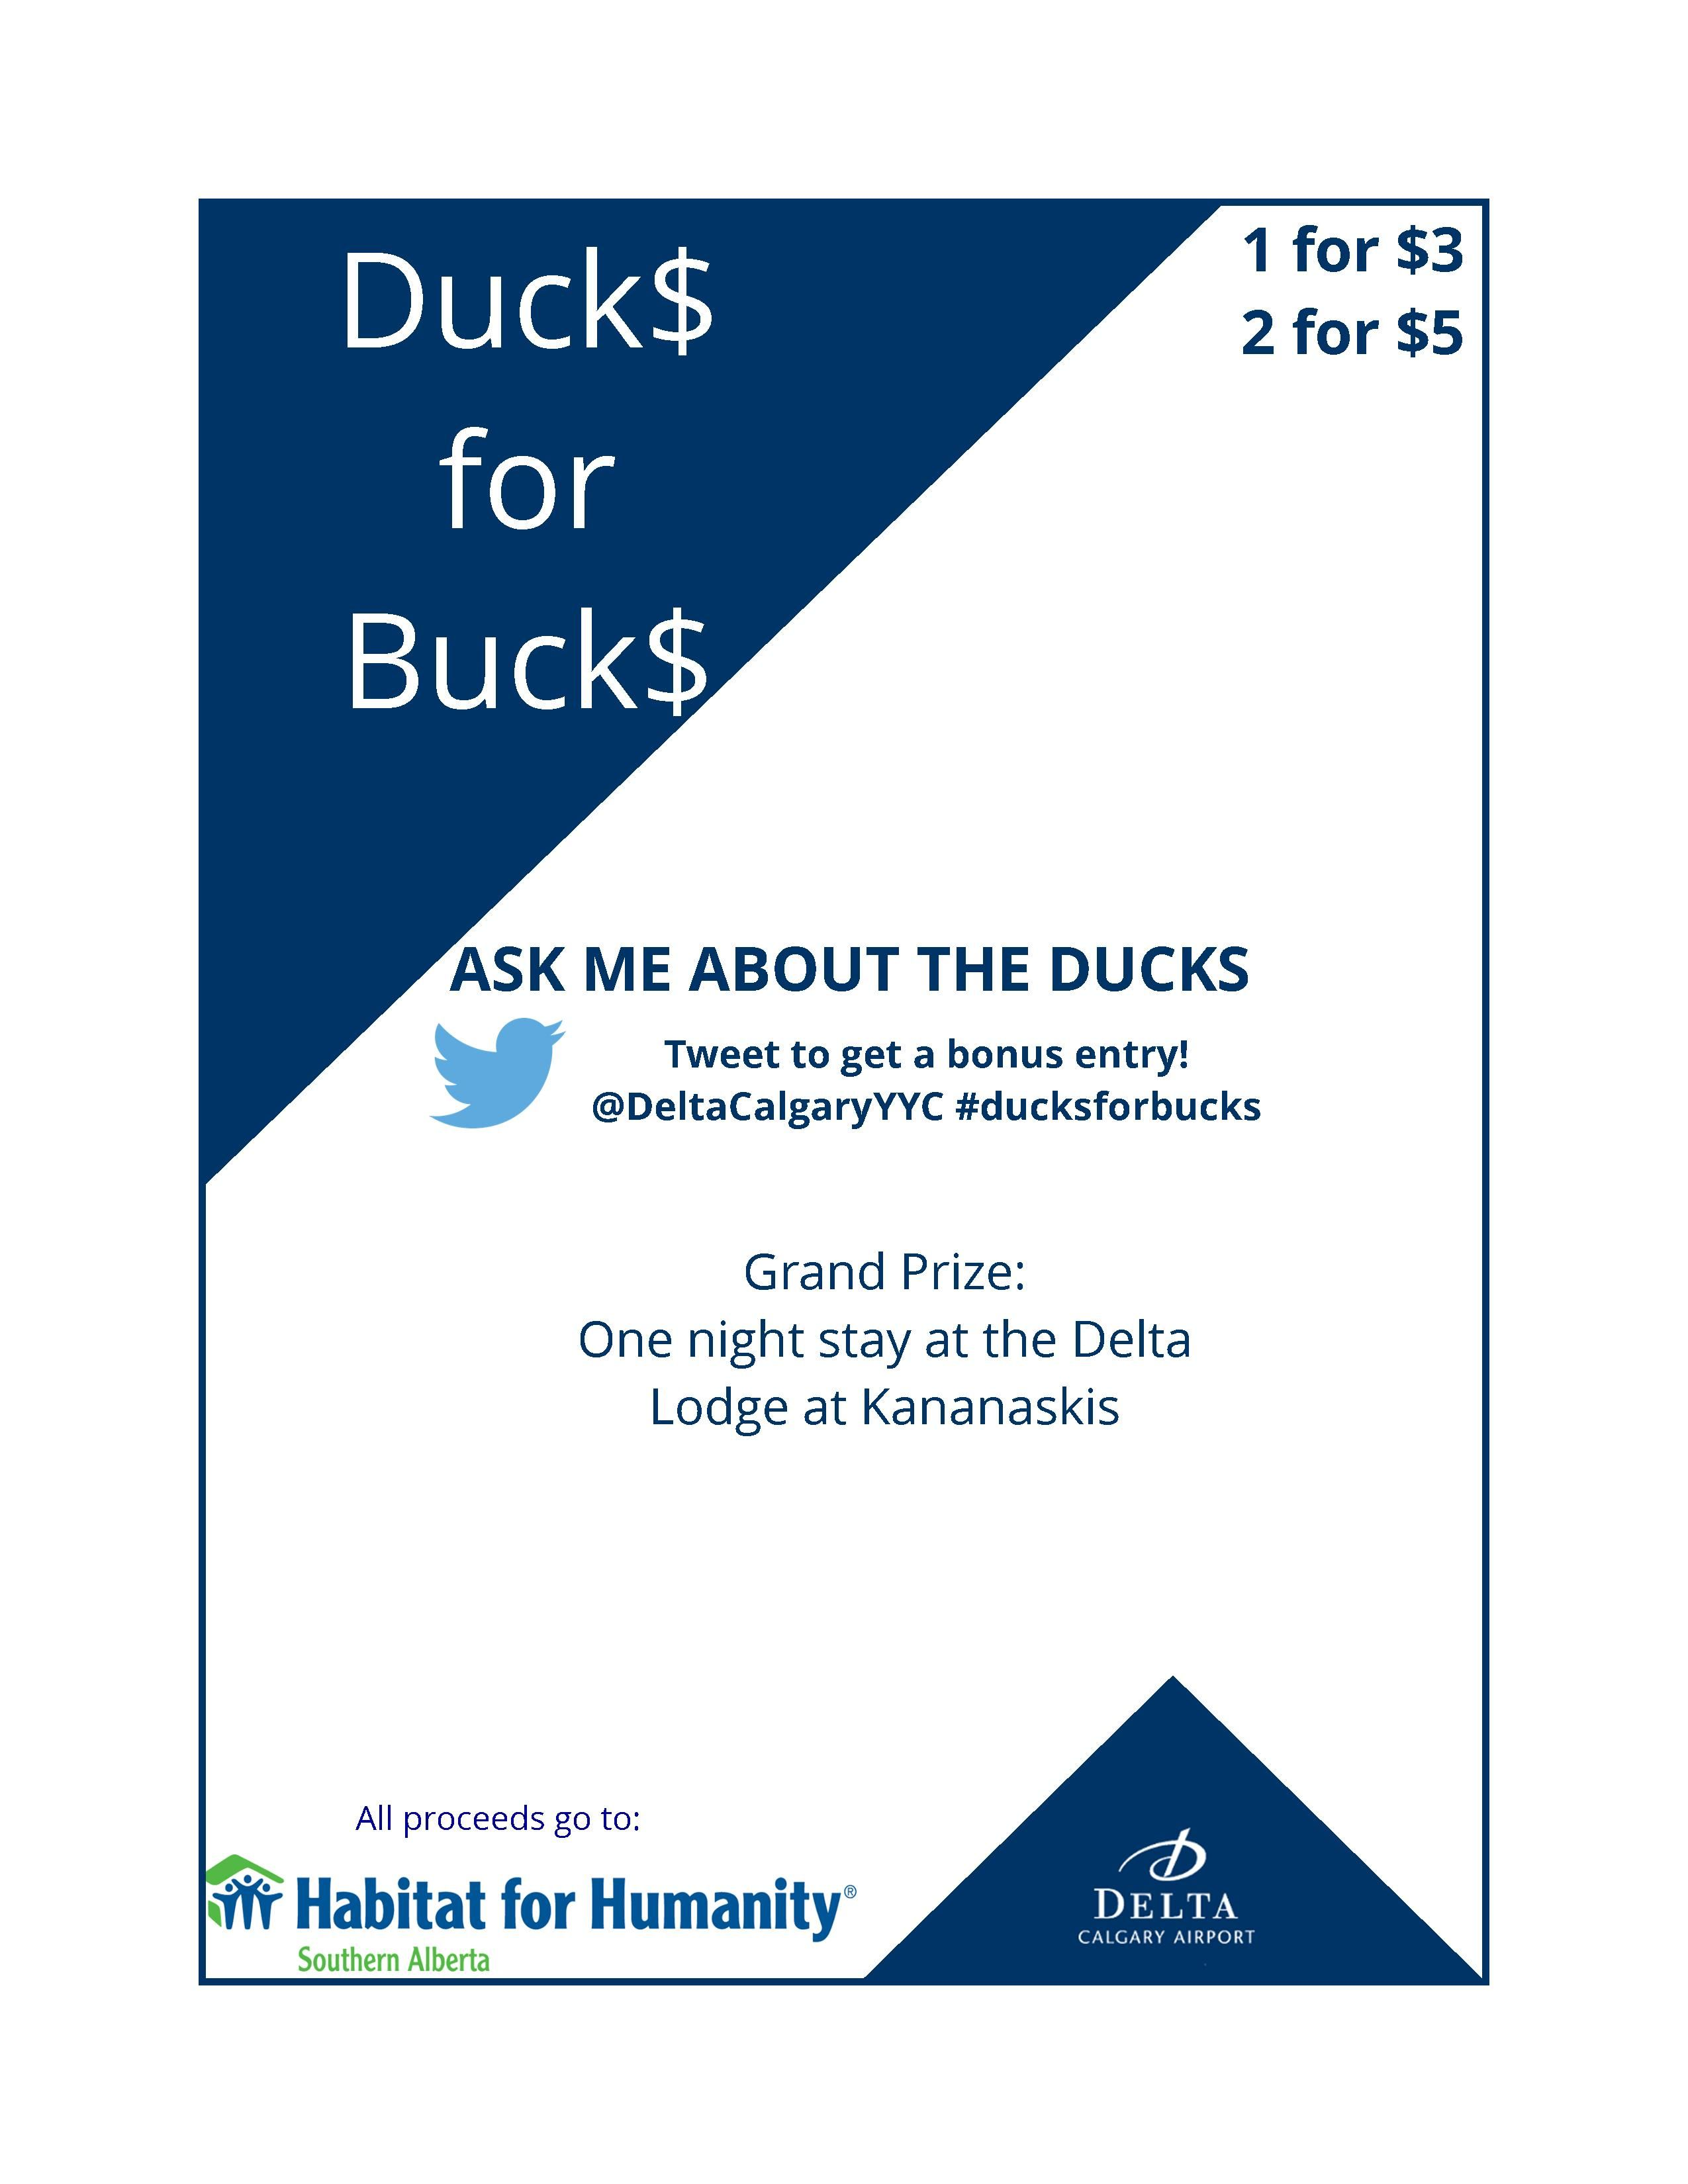 Our annual #ducksforbucks fundraiser is back! Help us fill our pool with ducks, while donating money to Habitat for Humanity Southern Alberta. We'll be holding a pool party on August 22, with the winner winning a one night's stay in a deluxe room at the @deltalodgekan!